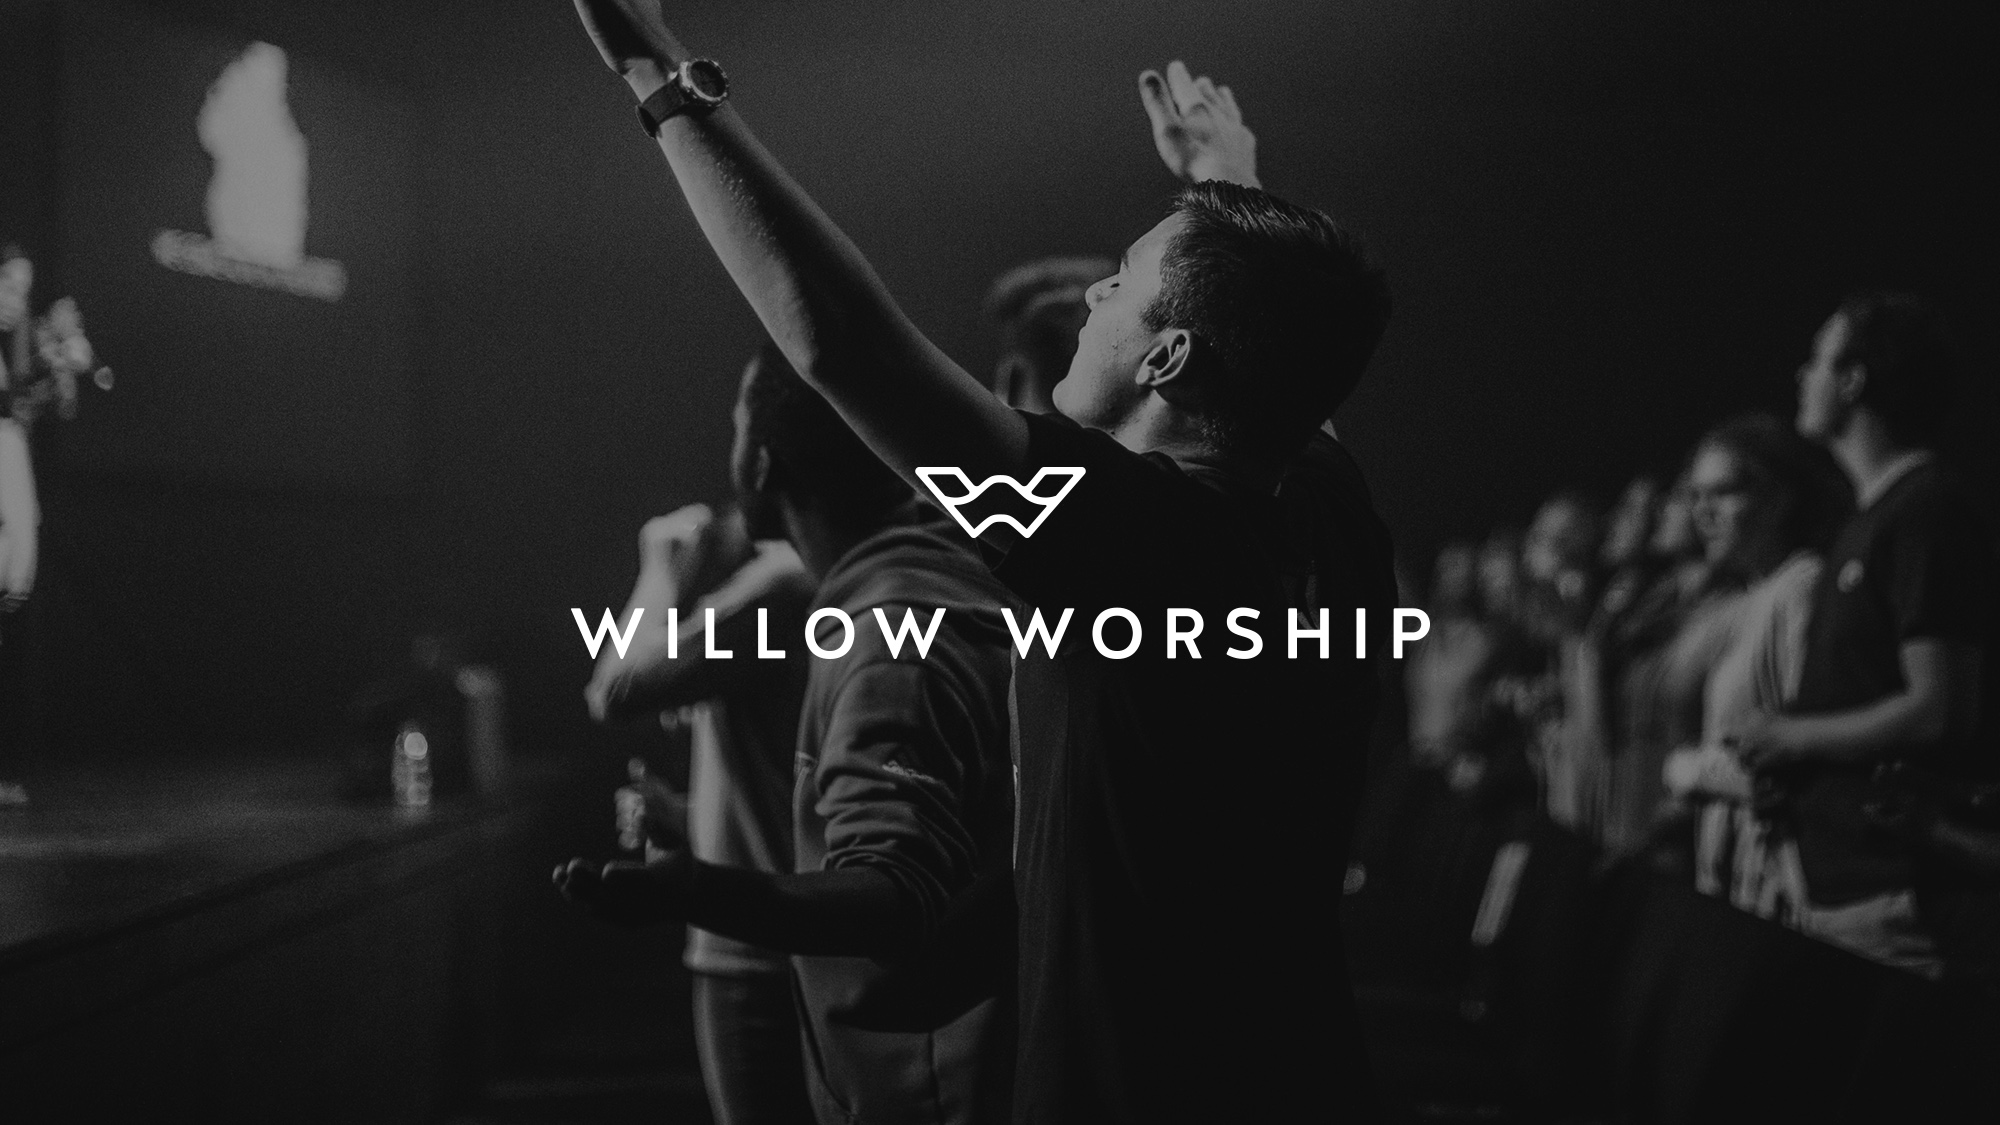 willow worship promo.jpg